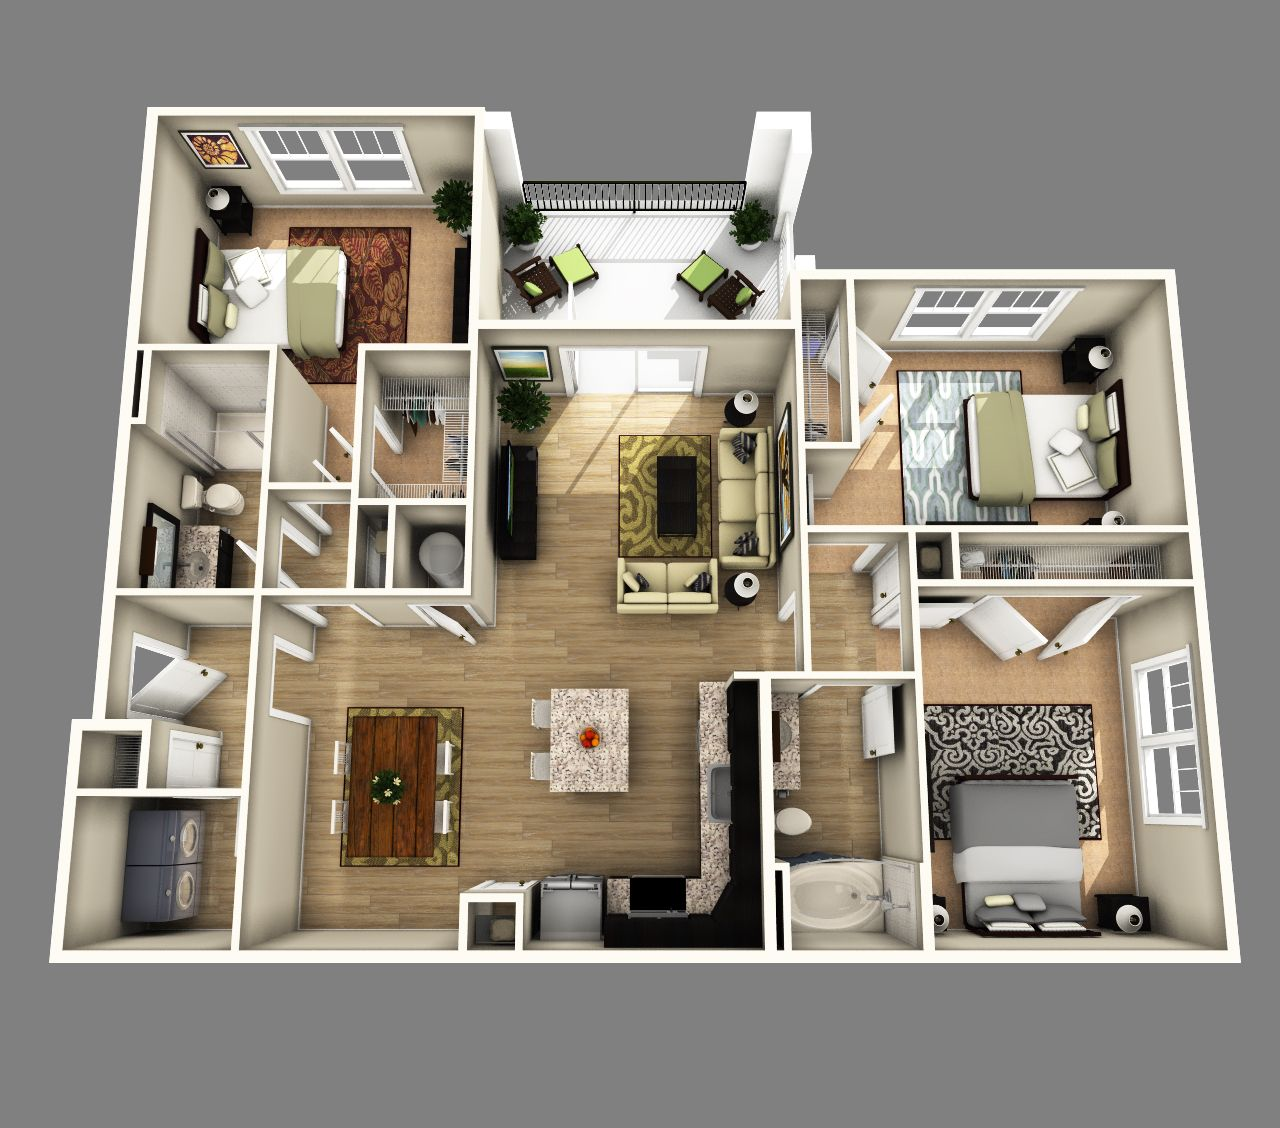 3d open floor plan 3 bedroom 2 bathroom google search for Apartment design plans 3d